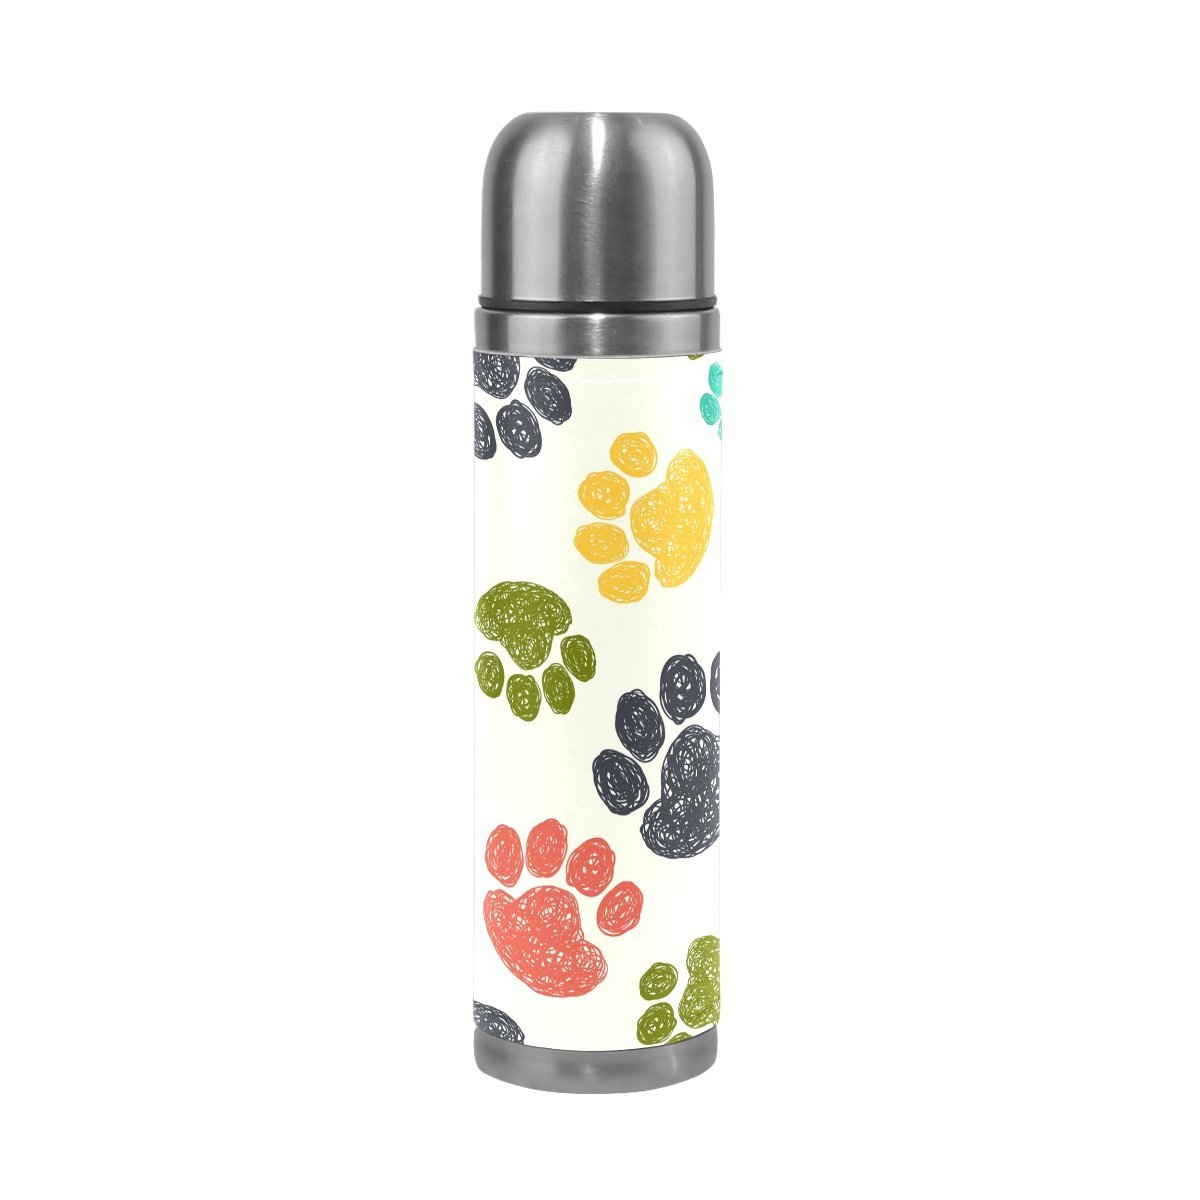 ALAZA 17 oz Colorful Dog Paw Print Double Wall Vacuum Cup Insulated Stainless Steel PU Leather Travel Mug, Christmas Birthday Gifts for Mom Dad Boys Girls Kids Lover Friends